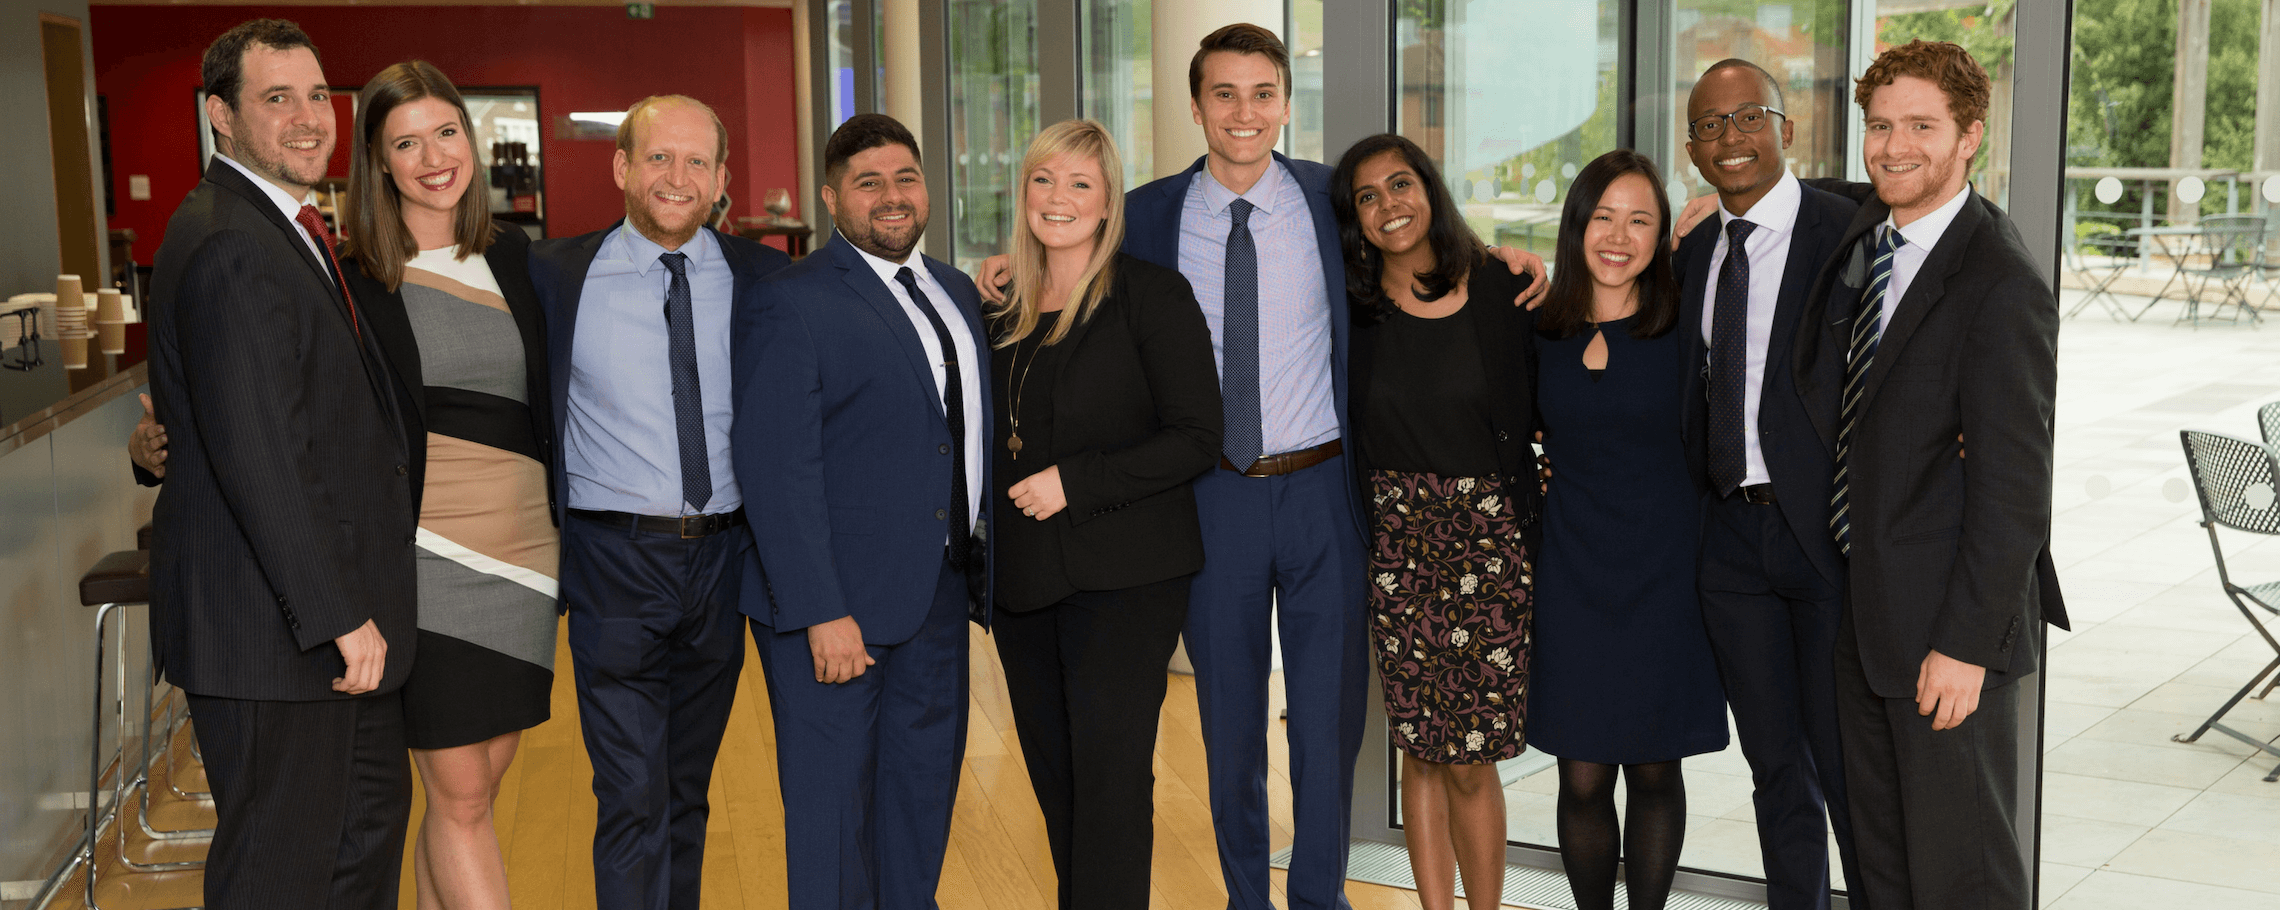 Pershing Square class of 2017-19 1+1 MBA Students